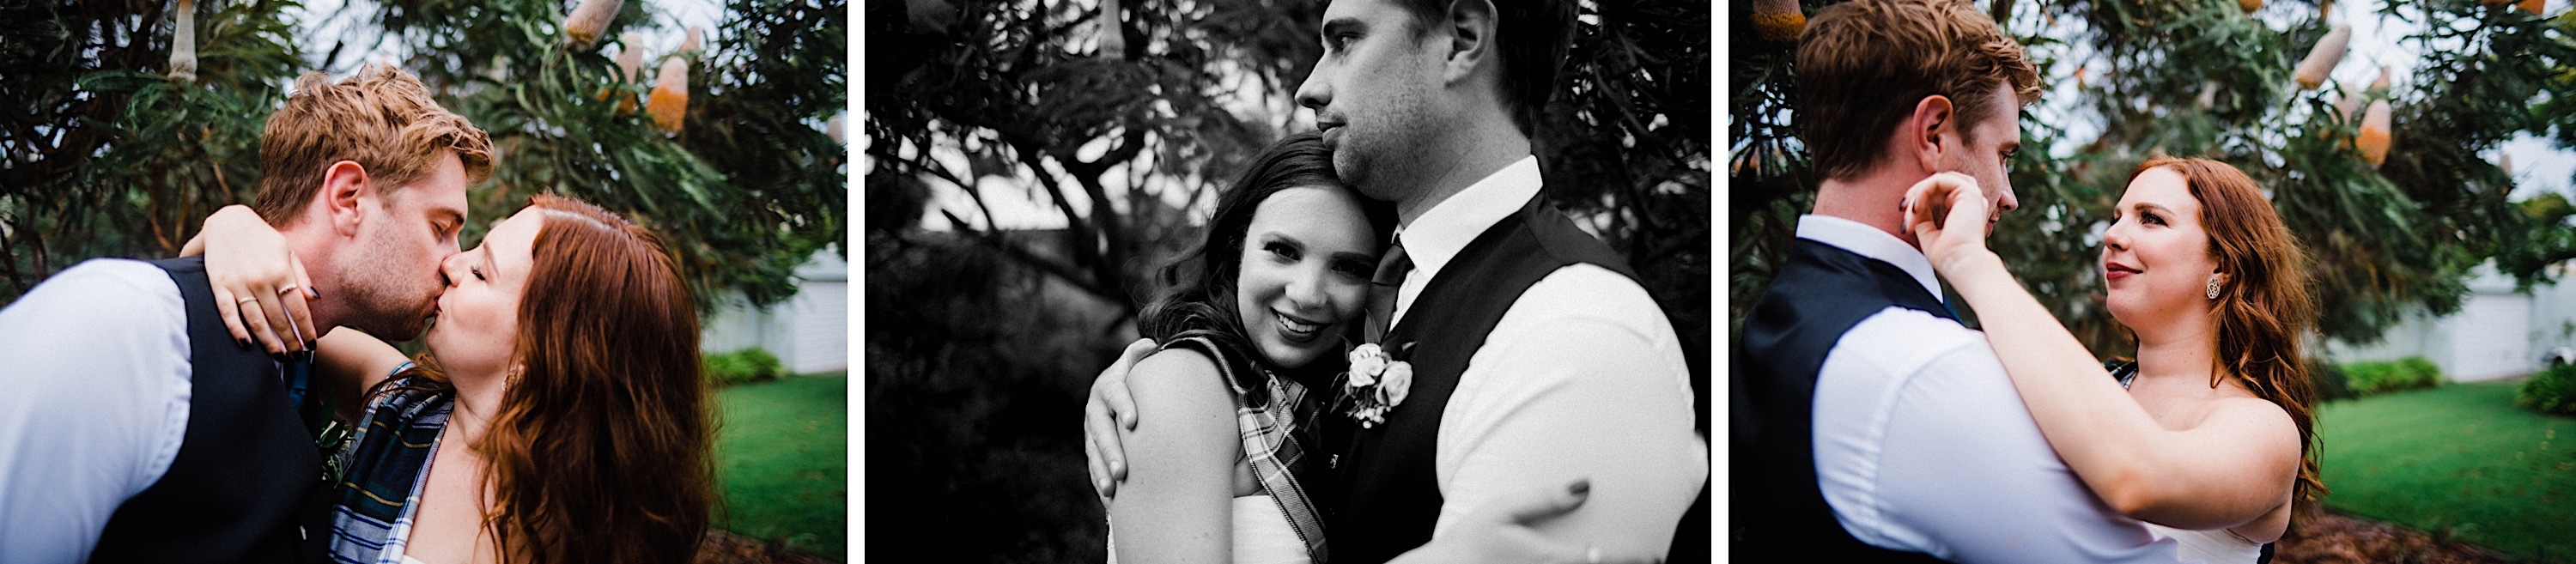 Three wedding portraits, one in black & white, of the bride & groom laughing and cuddling at their Sustainable Backyard Wedding in Nedlands.